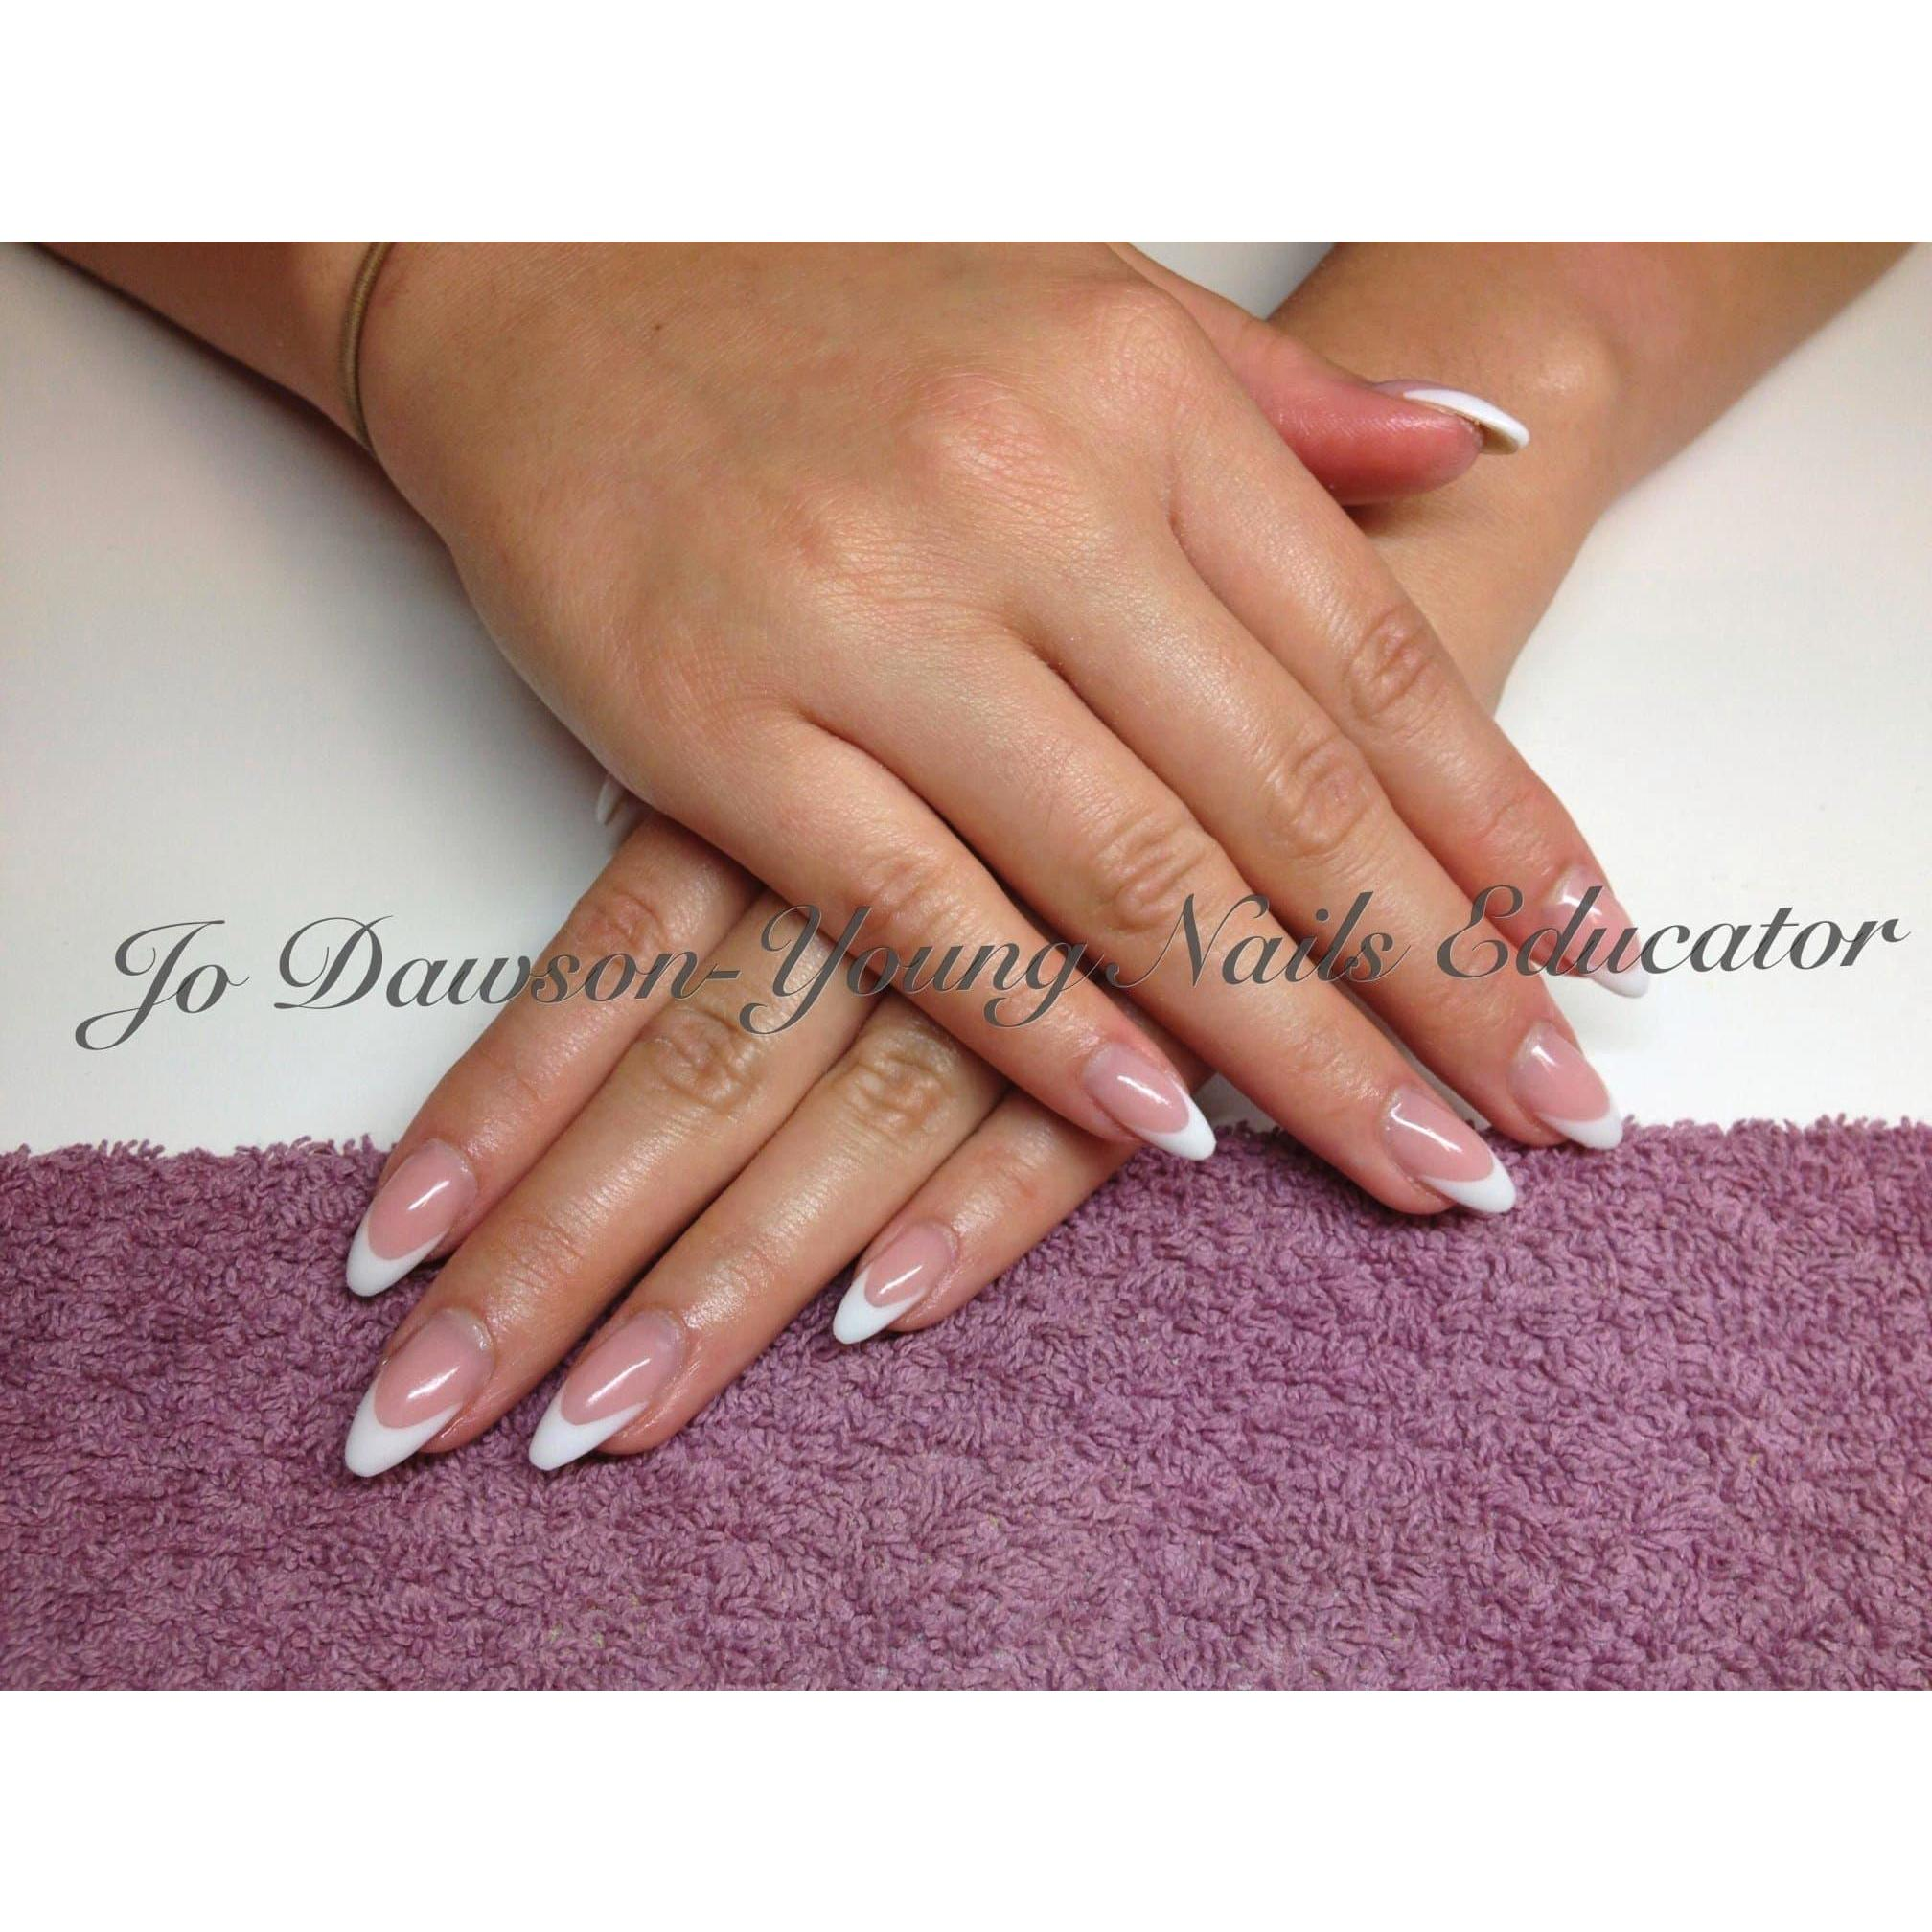 Kittens Got Claws Nail Beauty & Training - Spalding, Lincolnshire PE11 1EA - 01775 760307 | ShowMeLocal.com